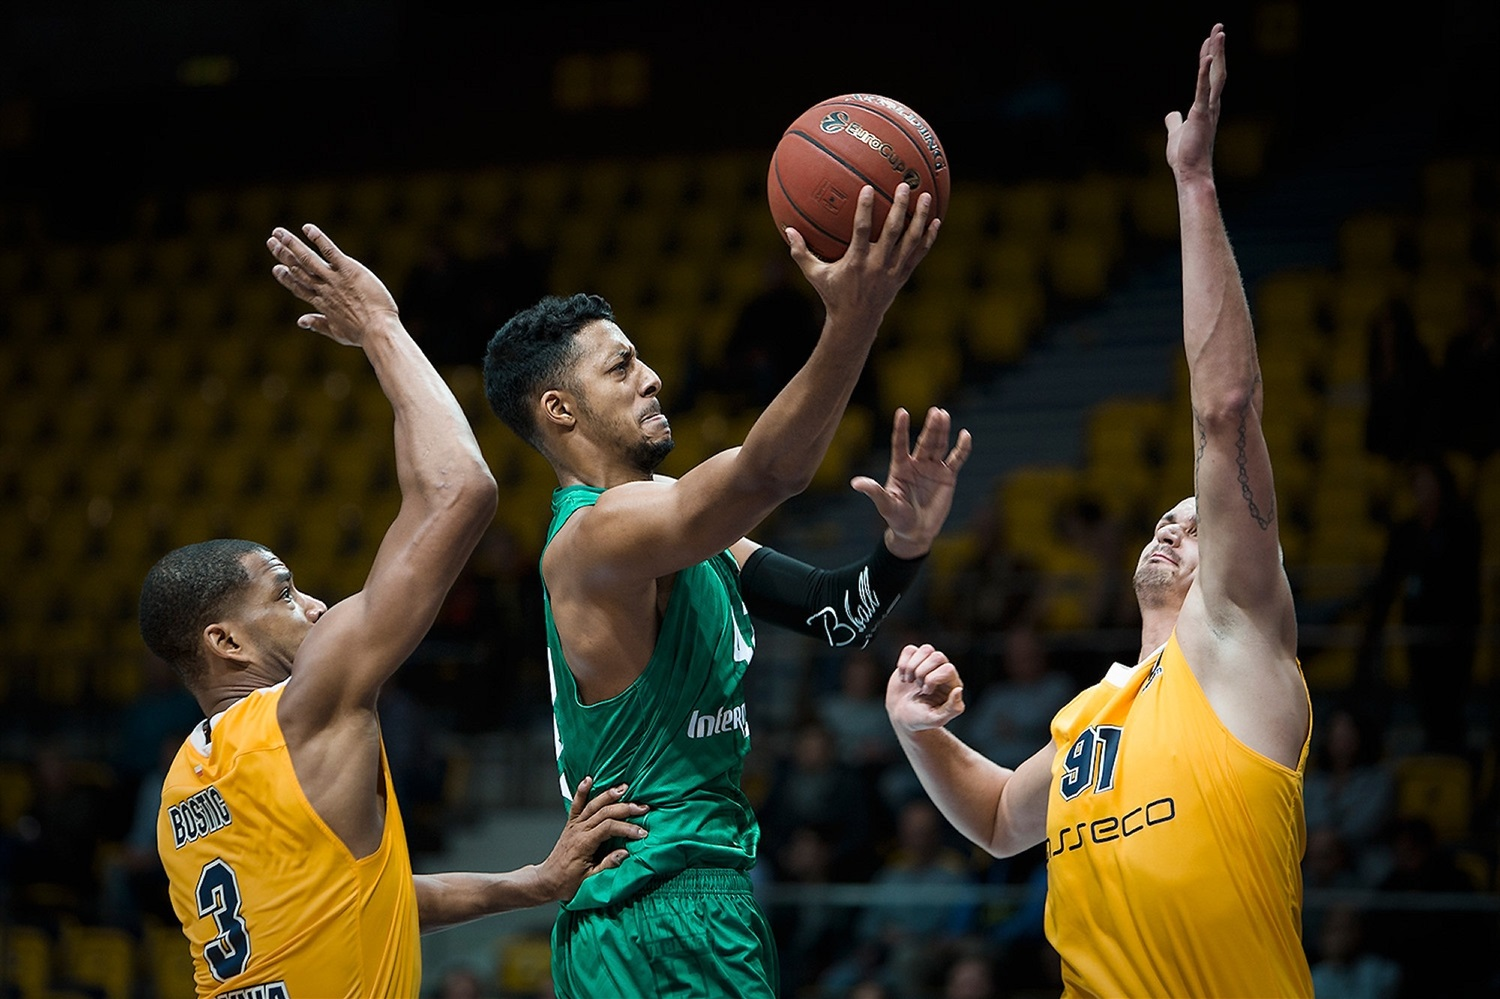 William Howard - Limoges CSP (photo Gdynia) - EC18